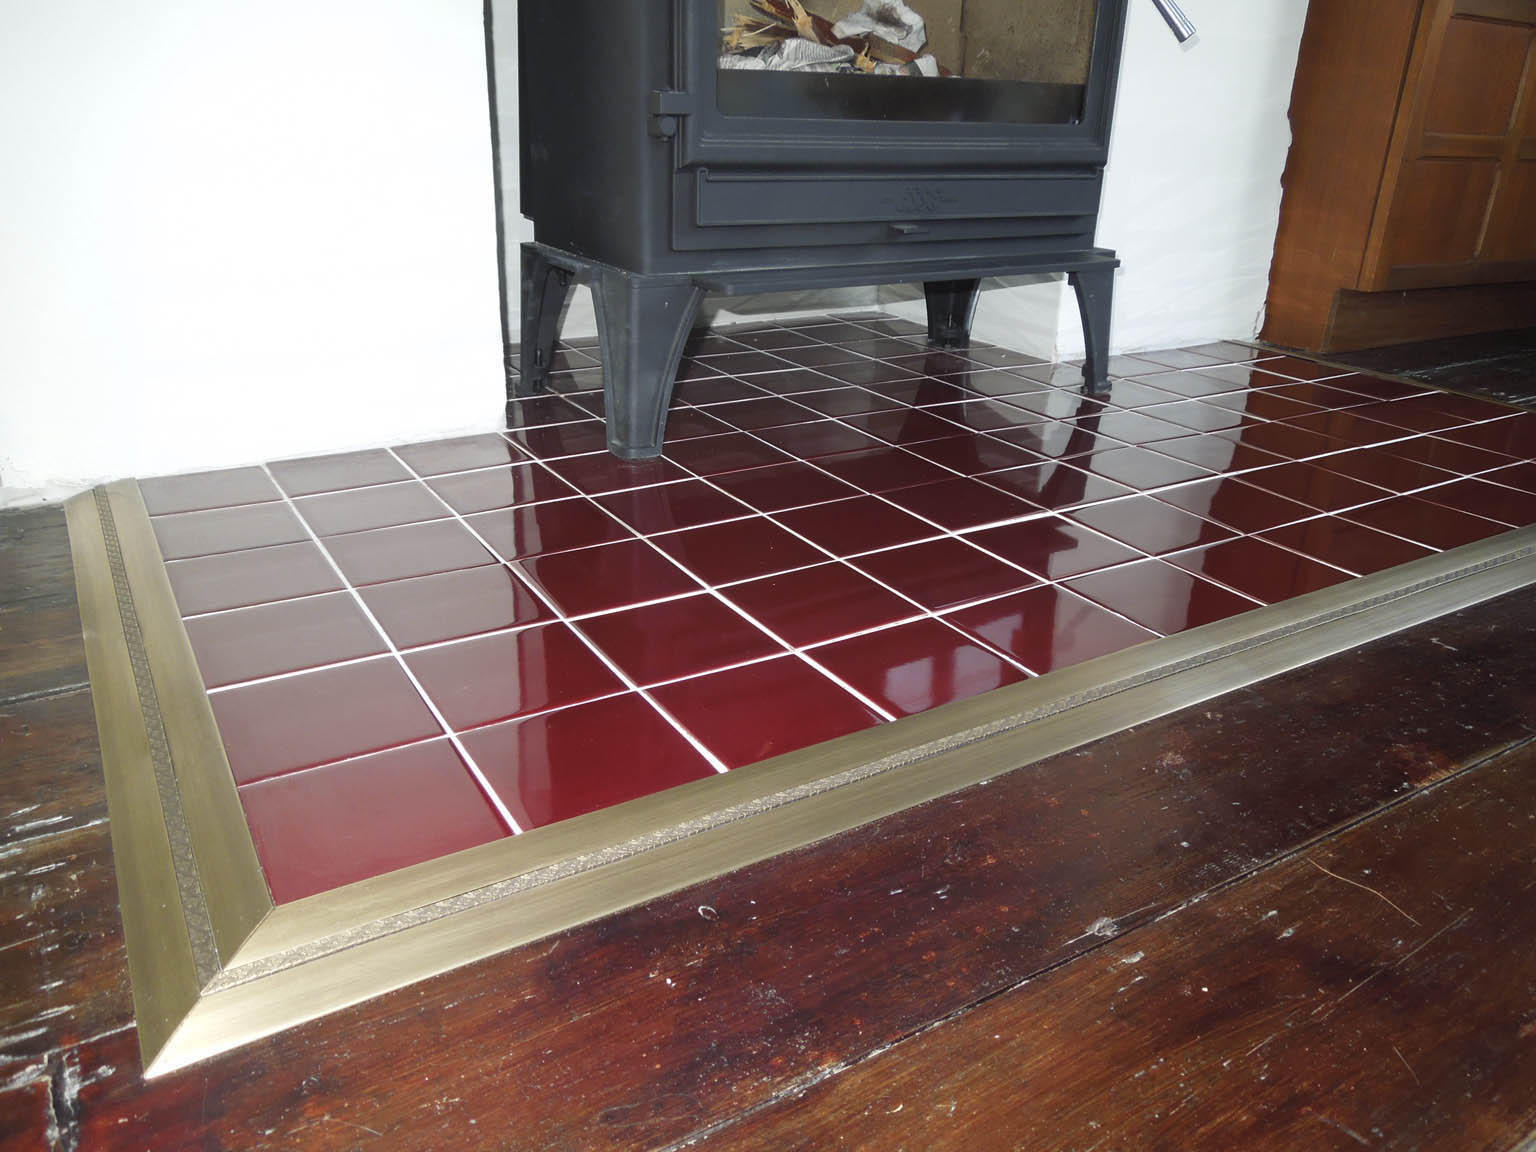 Posh door threshold edging red tiled hearth